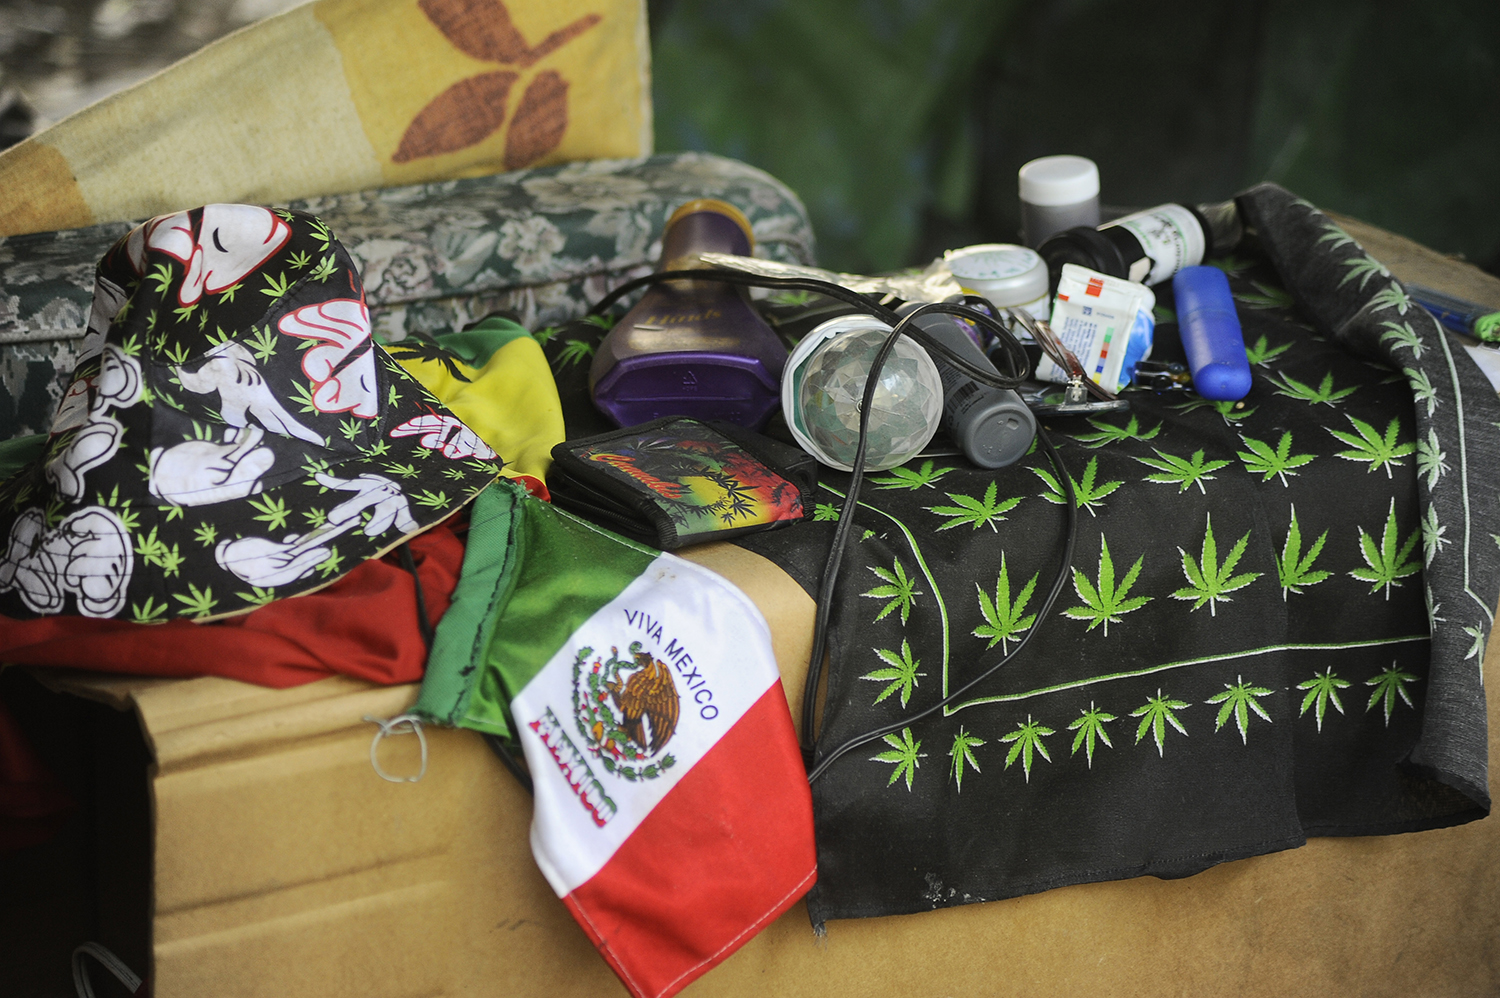 Activists display marijuana paraphernalia and grow crops at a protest encampment outside the country's Senate building in Mexico City on July 18 as they call for the legalization of the drug.